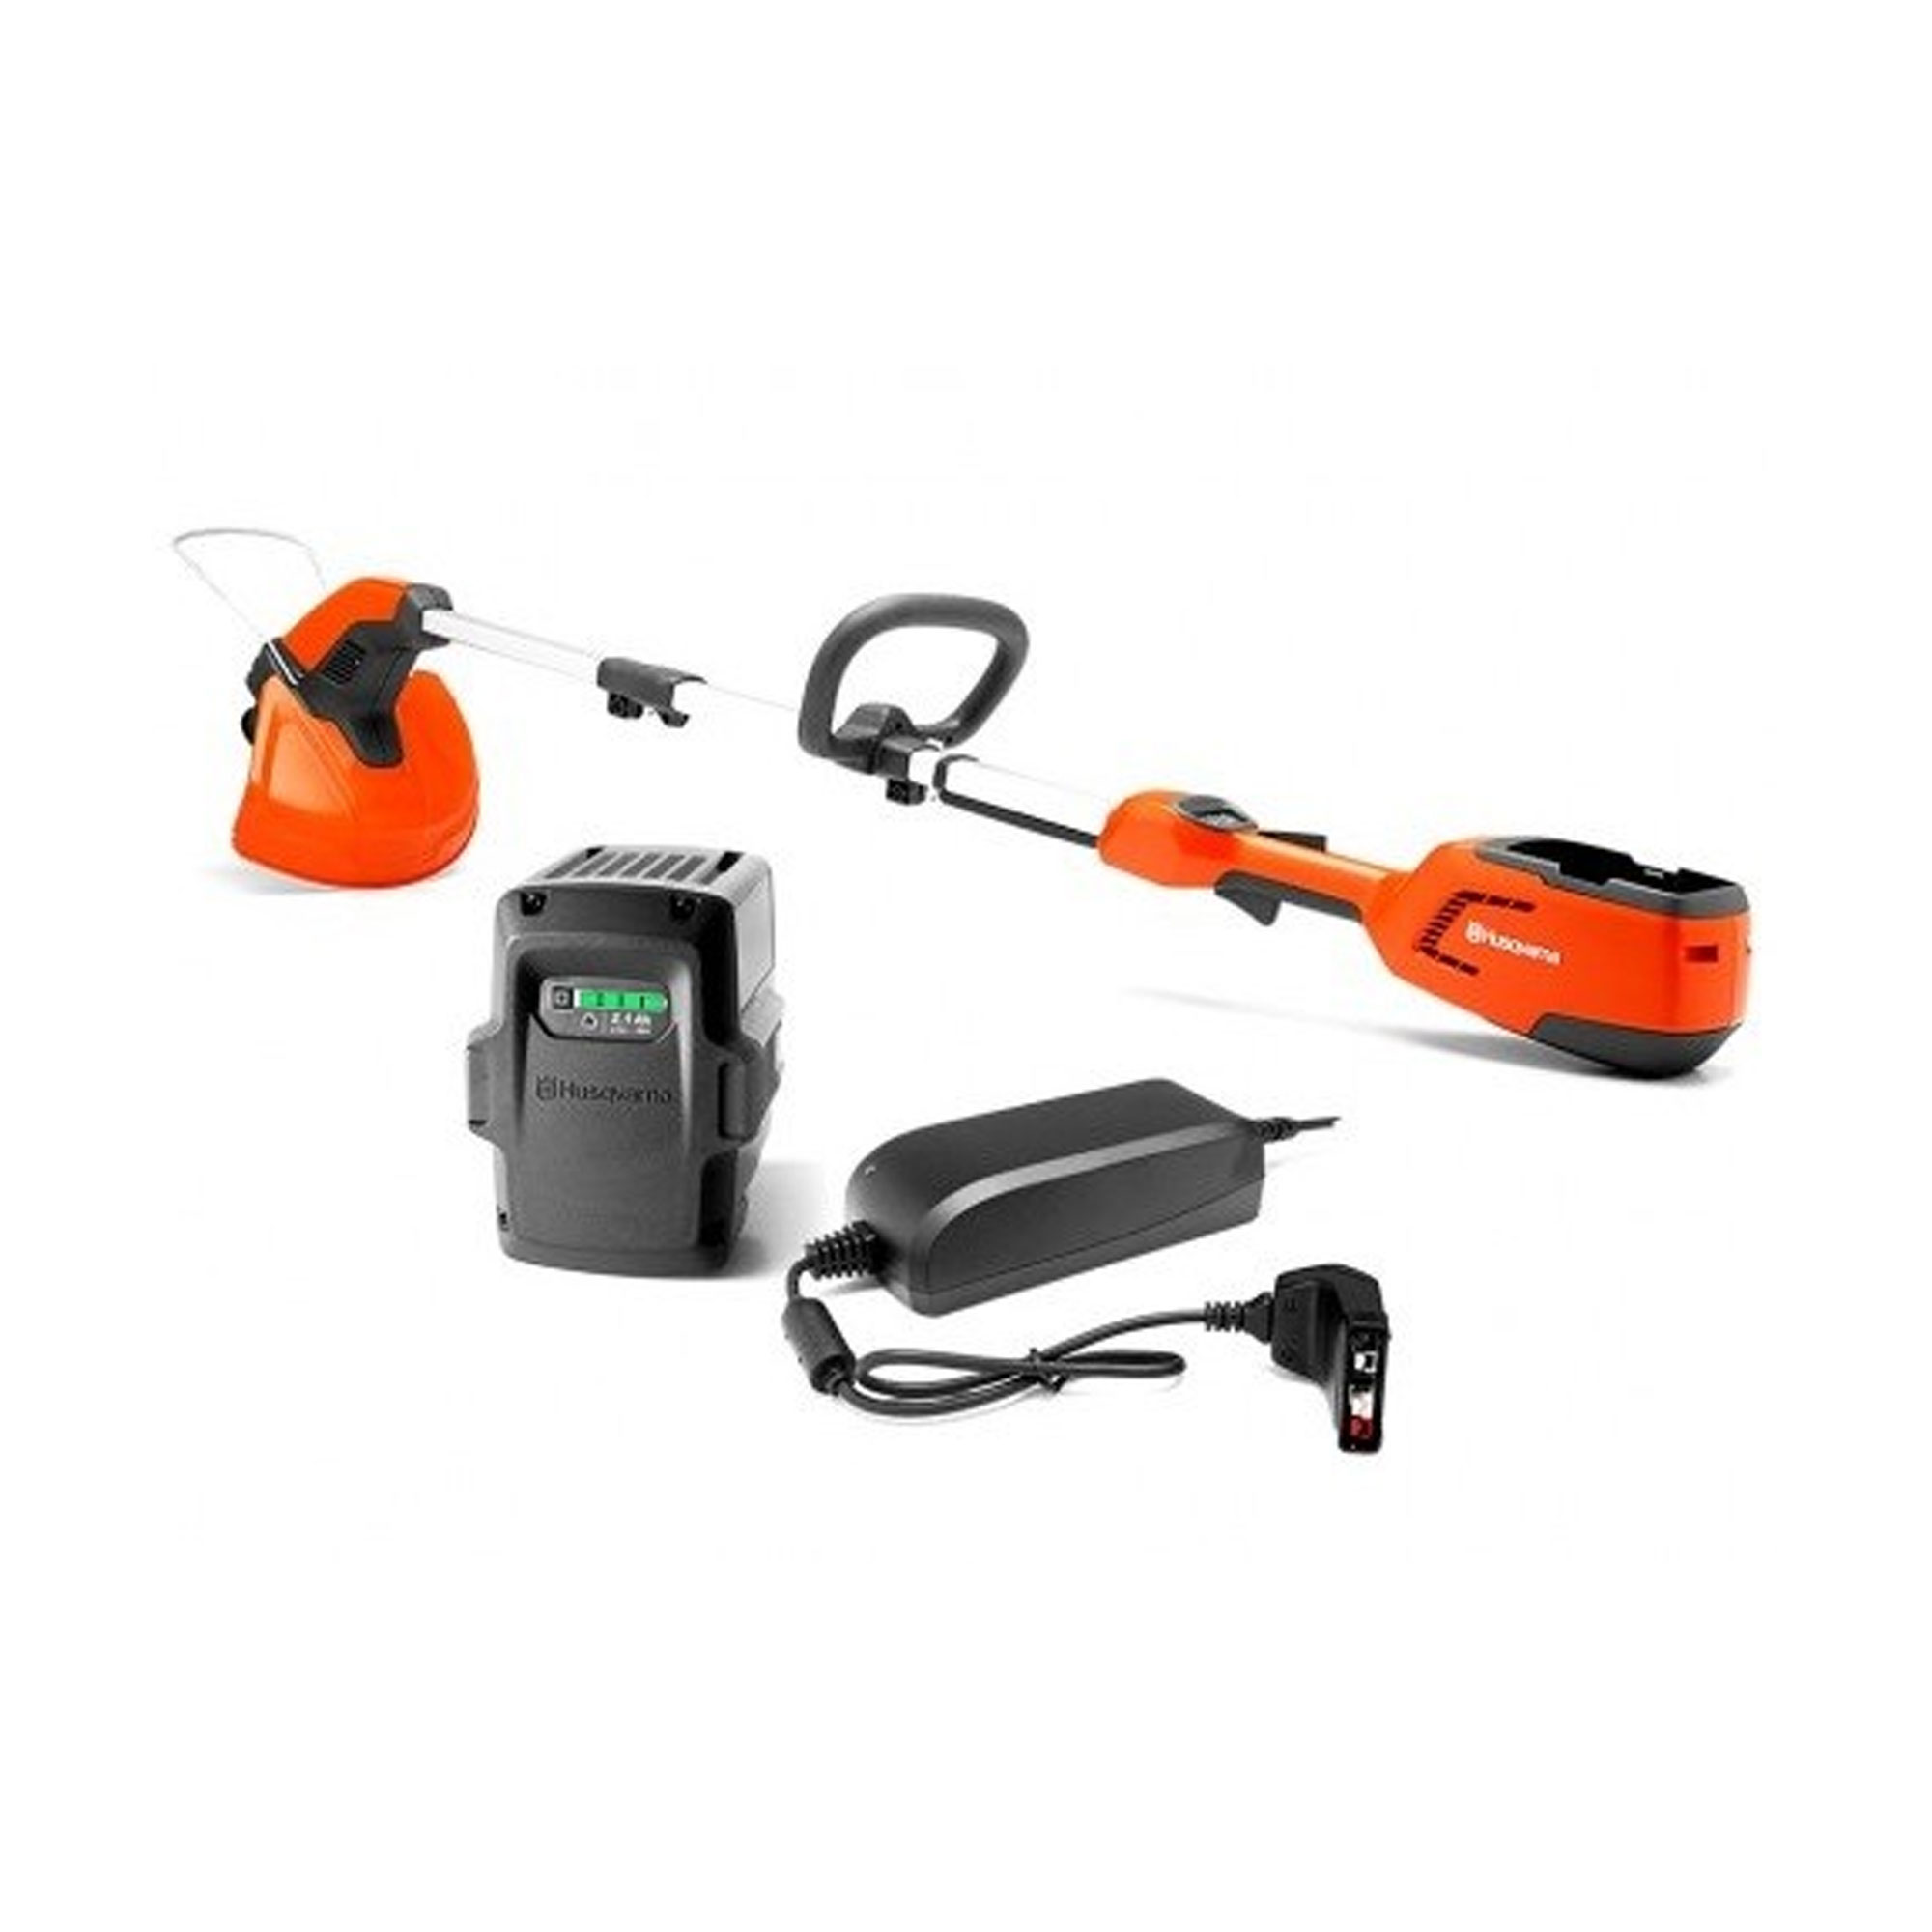 Husqvarna 115iL 40V Cordless Electric String Trimmer w/(Li-ion) Battery &Charger